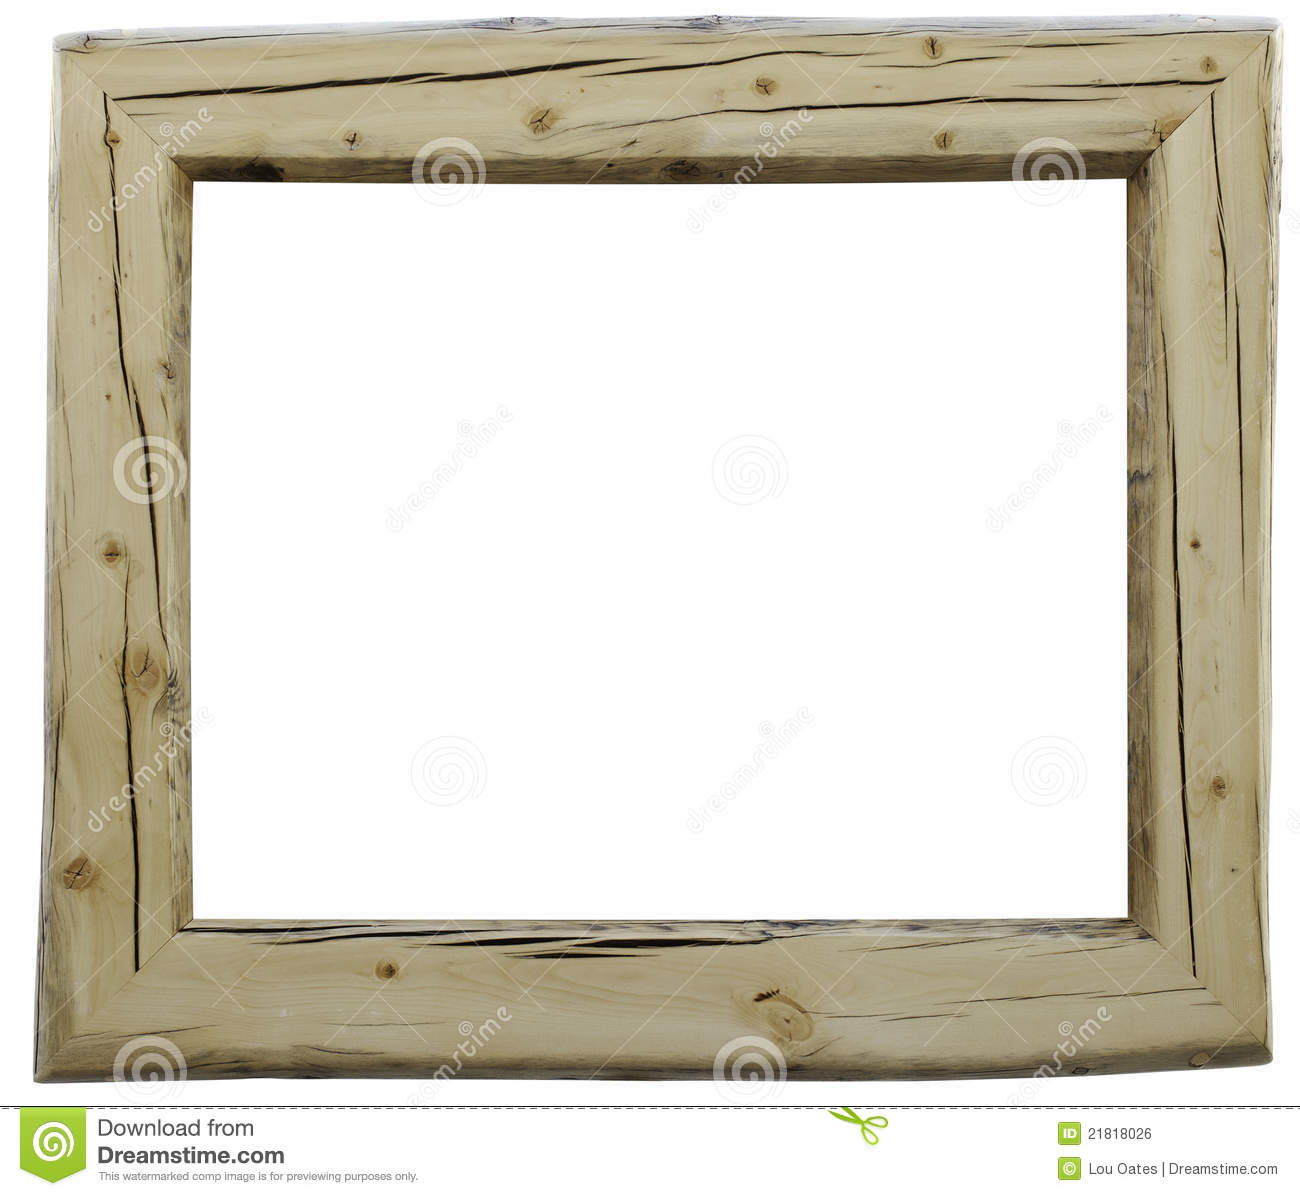 wooden picture frame clipart - Clipground for Wooden Picture Frame Clipart  54lyp